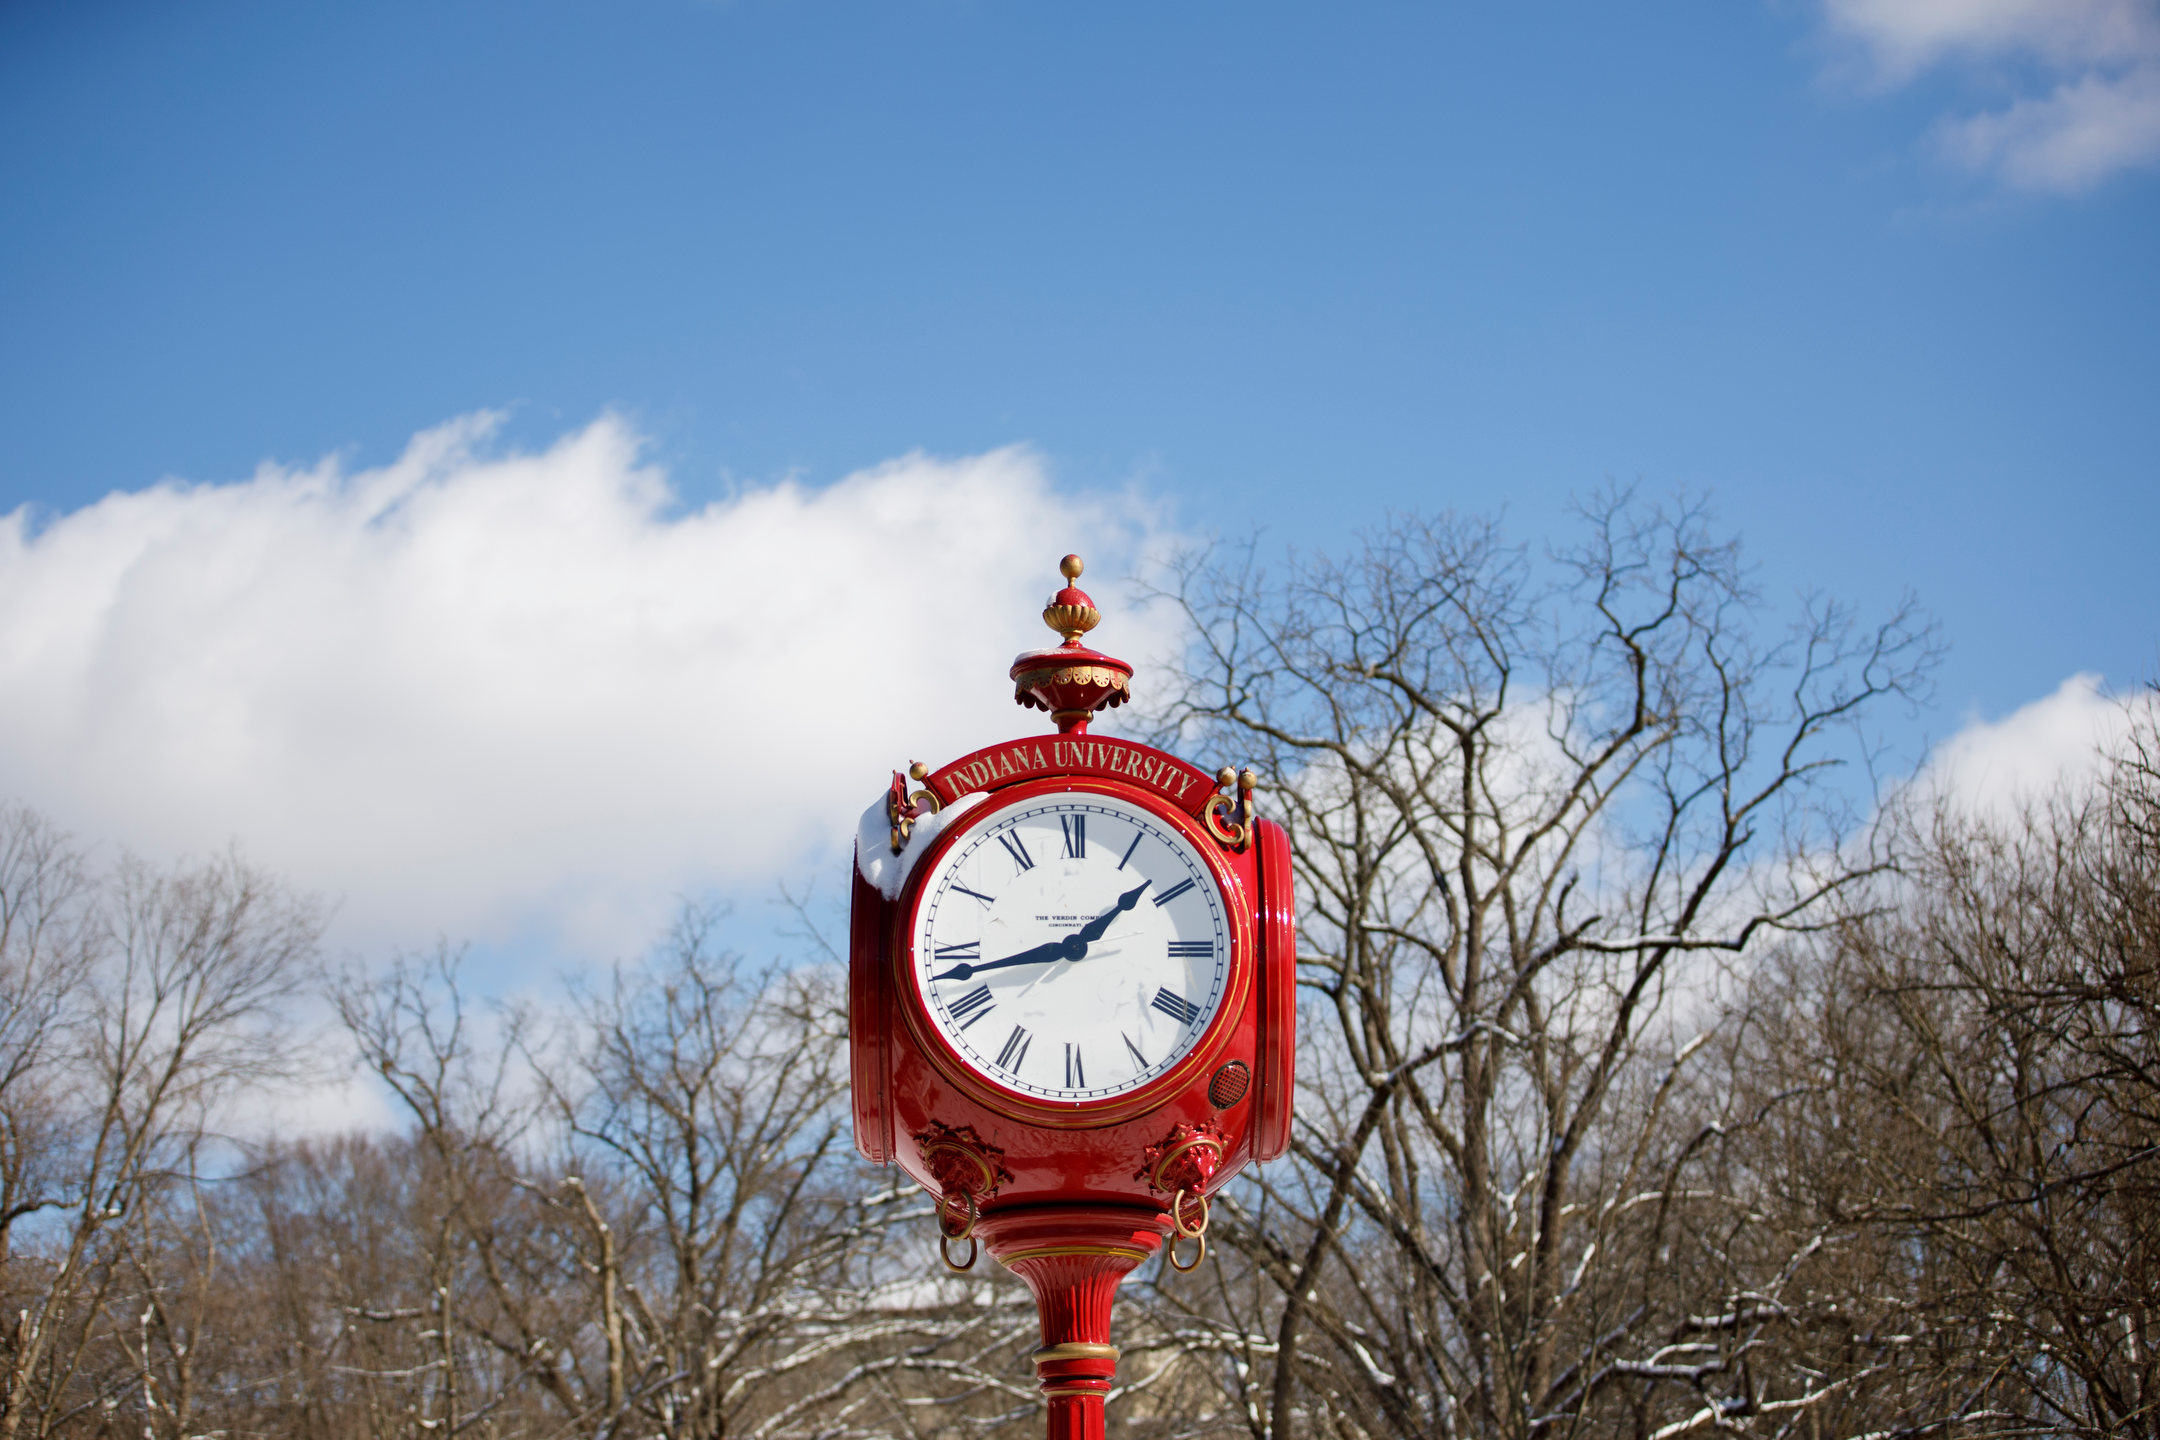 Snow adorns the top of a red clock near Woodburn Hall on a winter day at Indiana University Bloomington on Thursday, Jan. 28, 2021.